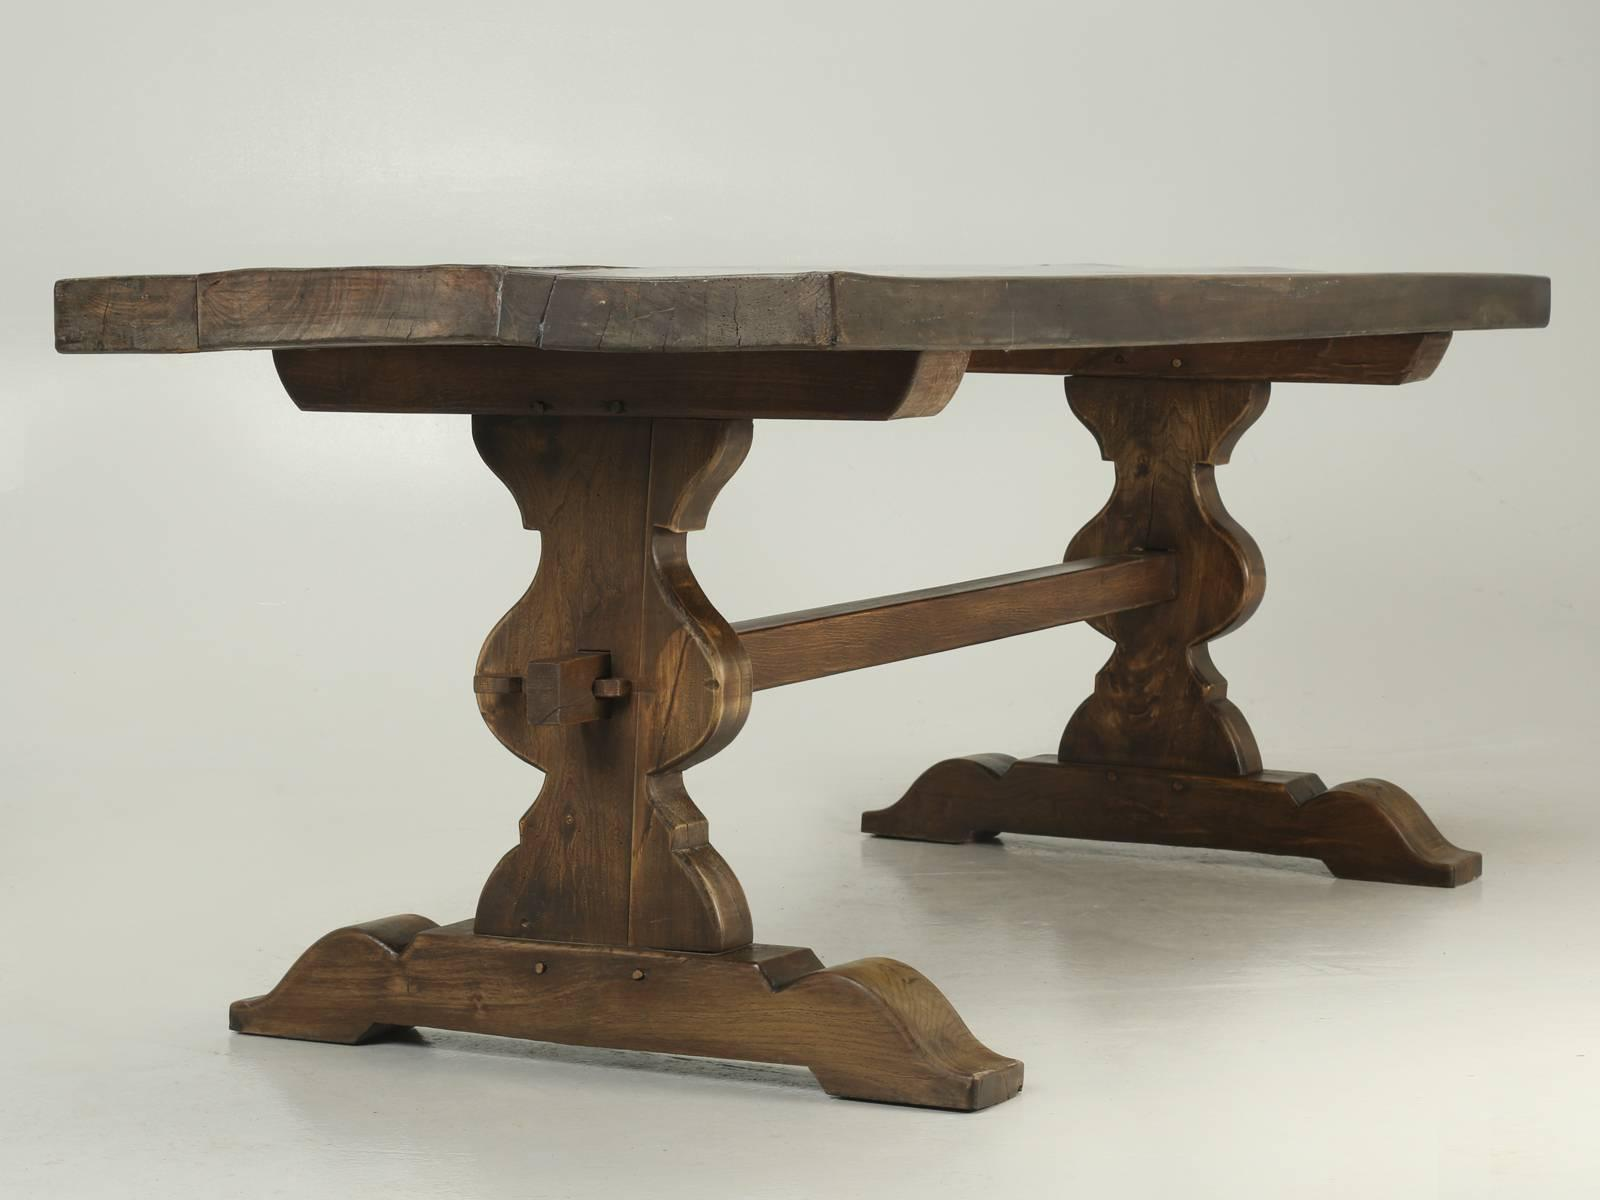 Merveilleux Antique French Trestle Dining Table, Circa 1900 For Sale   Image 10 Of 10